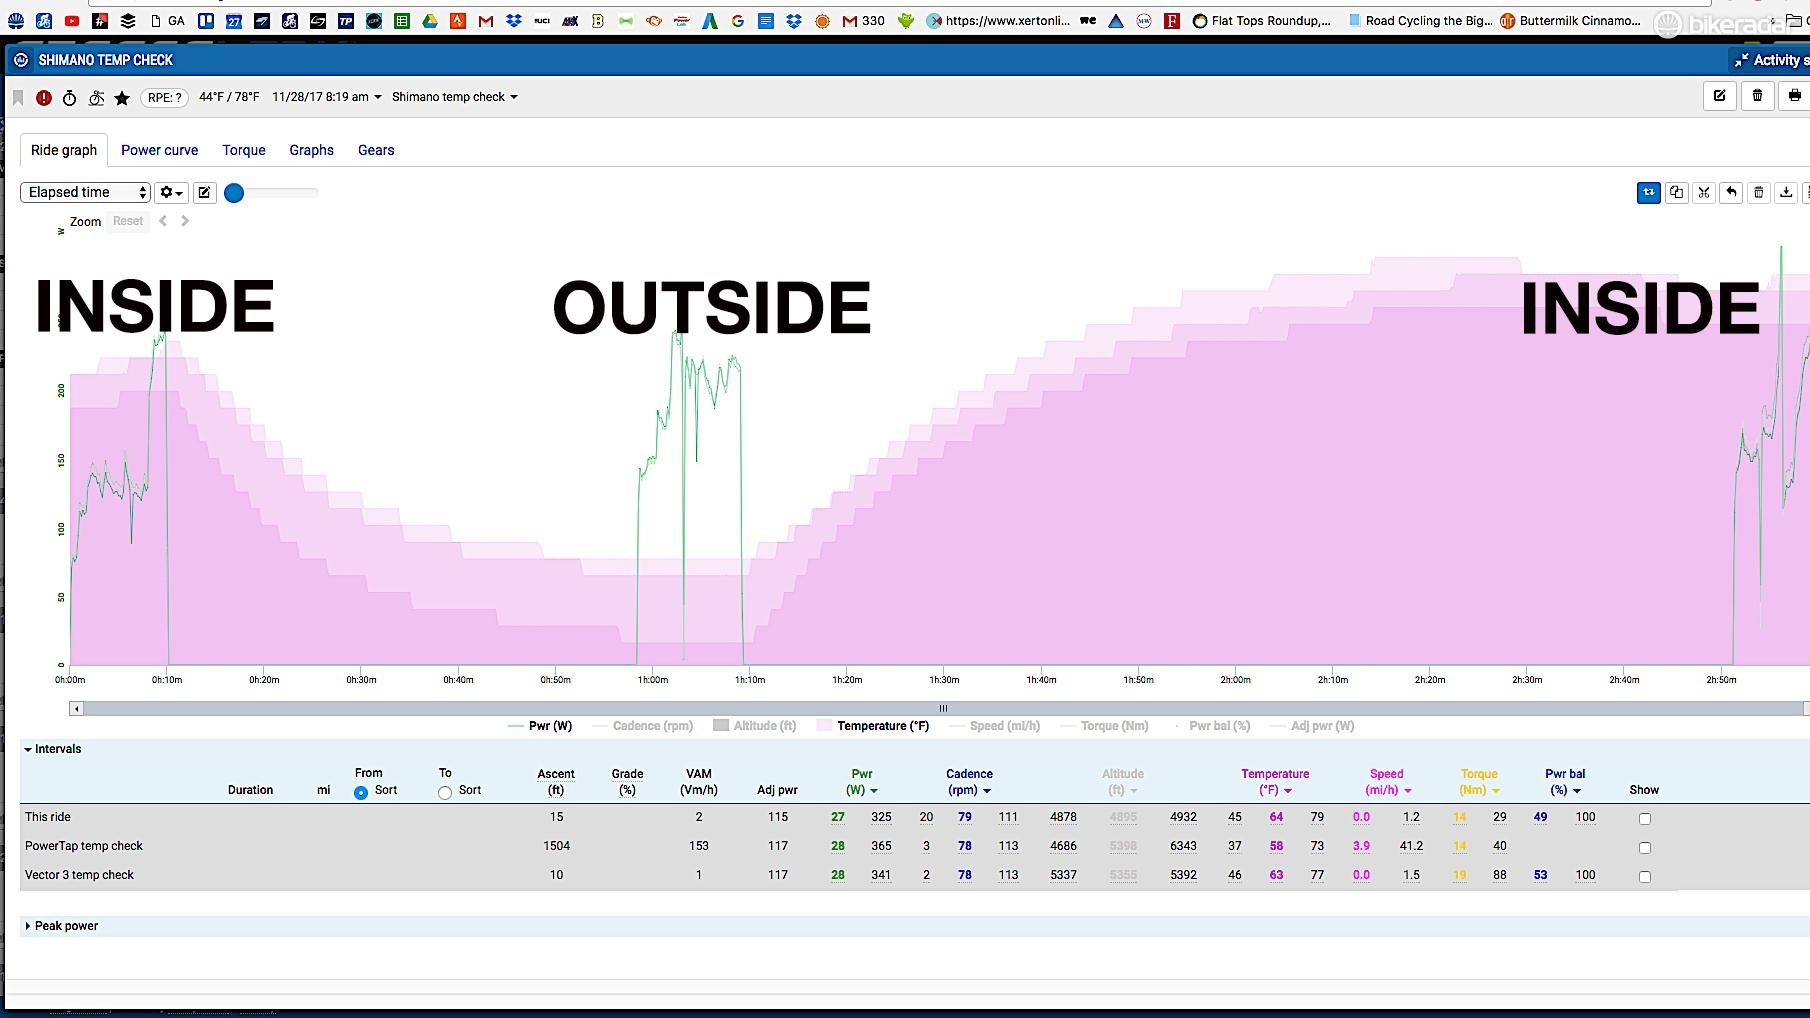 The Shimano meter doesn't respond as well to temperature changes (in pink) as Vector 3, Stages and PowerTap meters